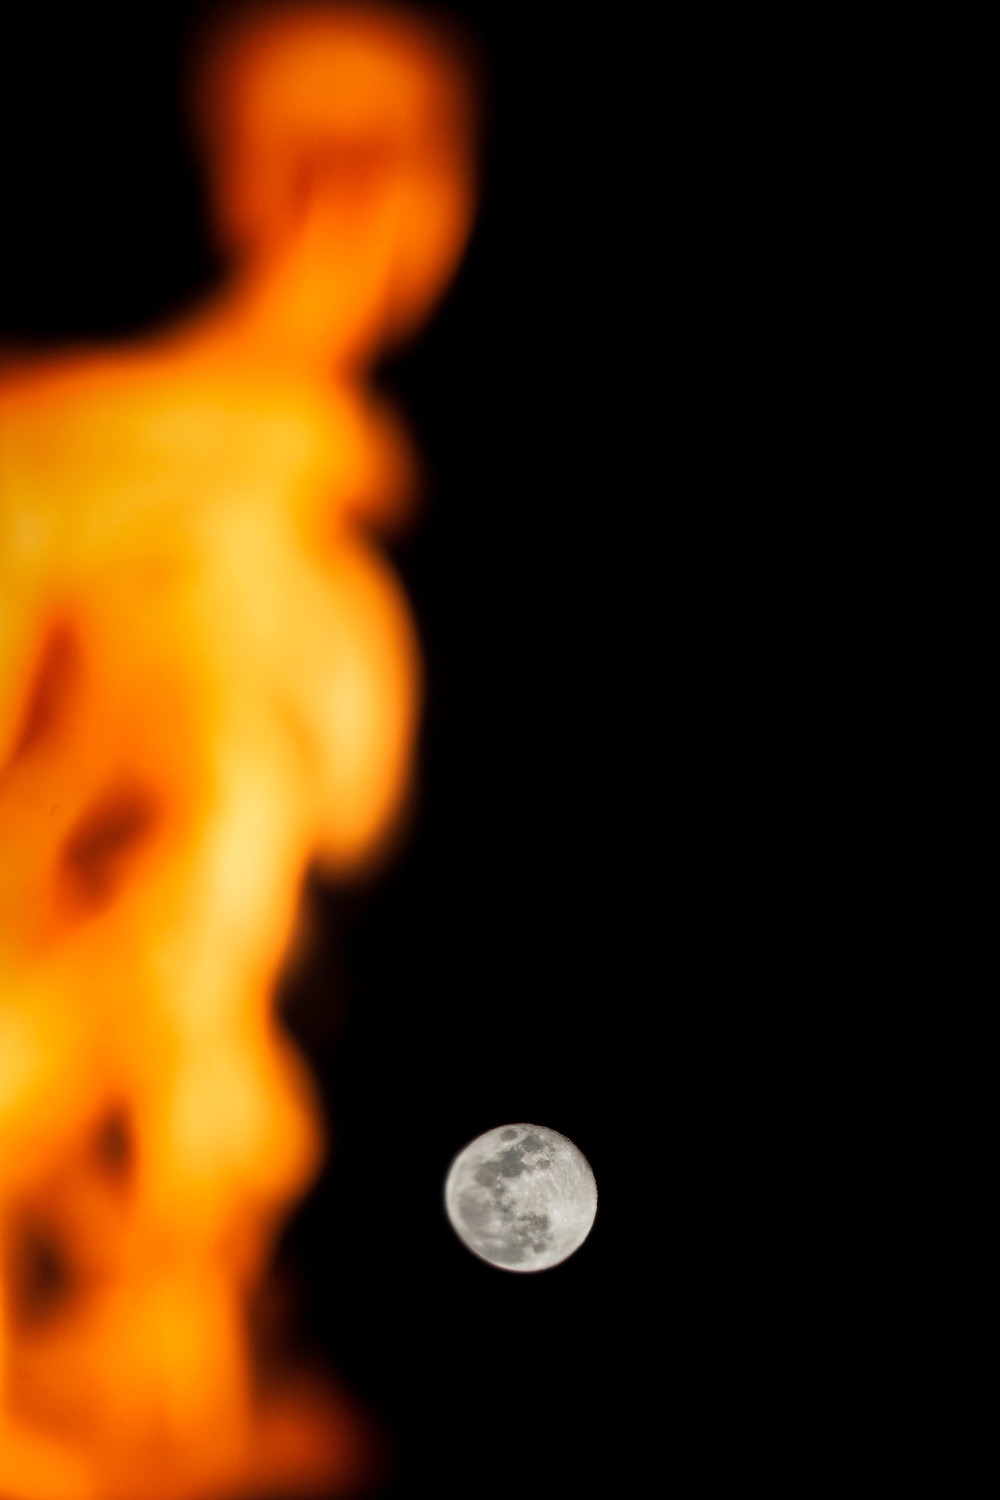 Full moon and a tiki torch fire